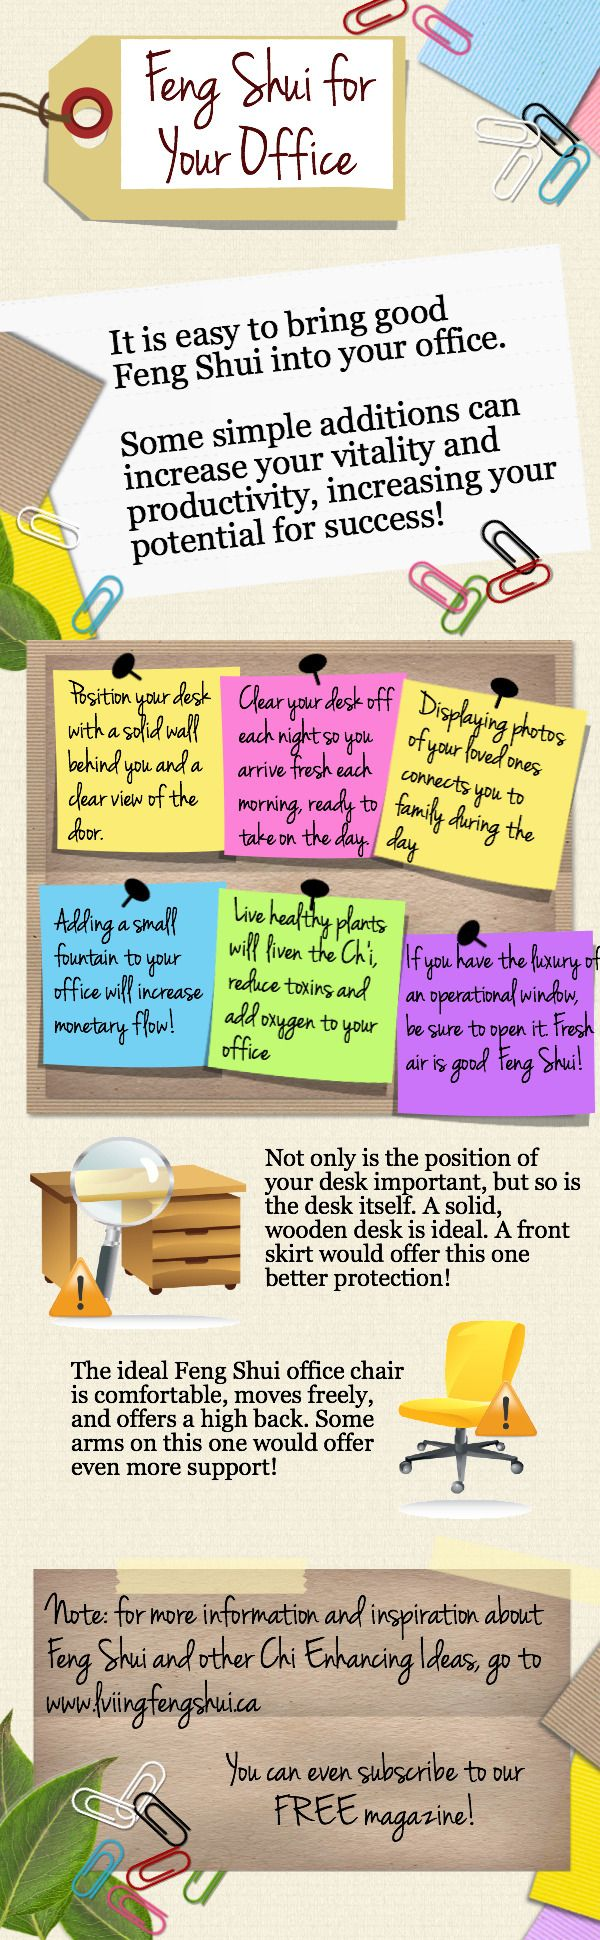 Some quick feng shui tips for the office